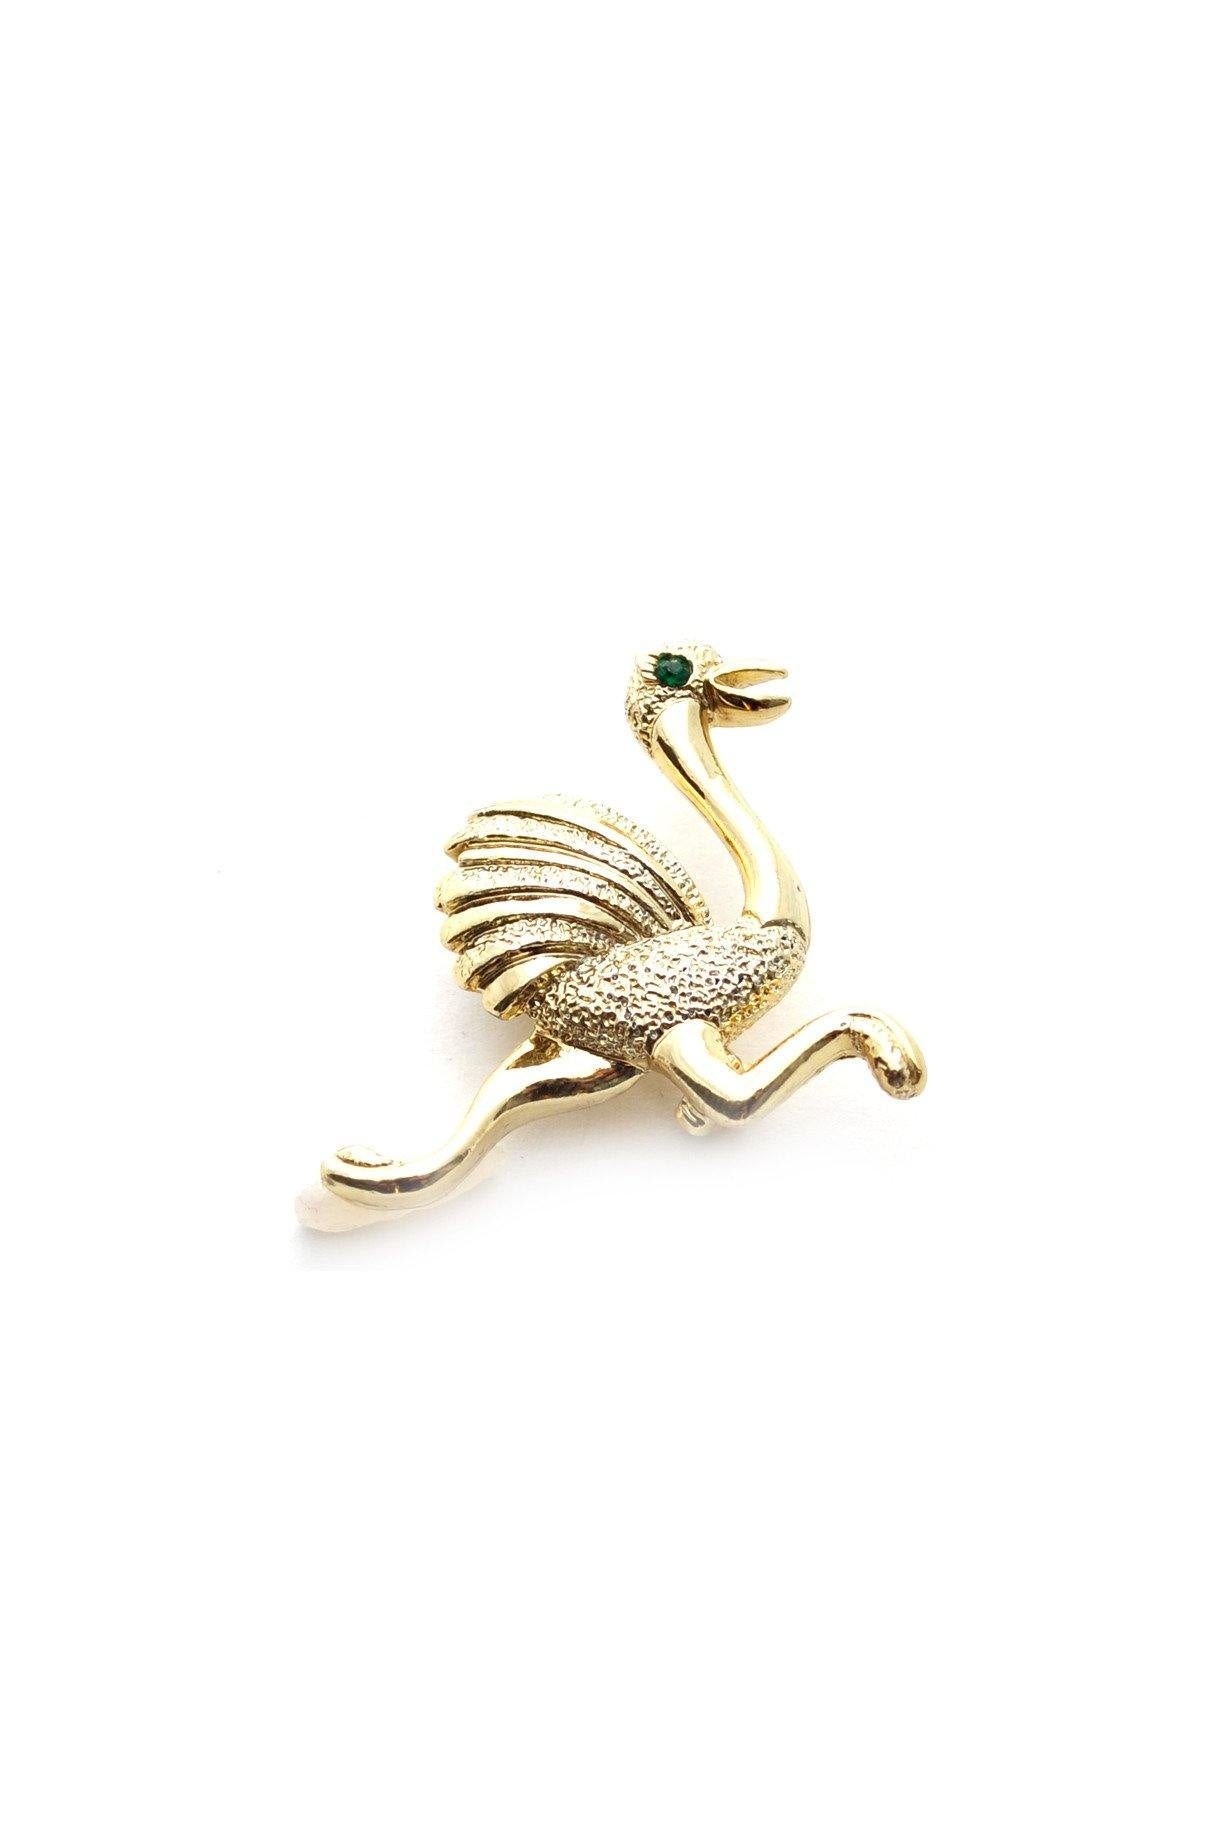 60s Gerry's Gold ostrich brooch